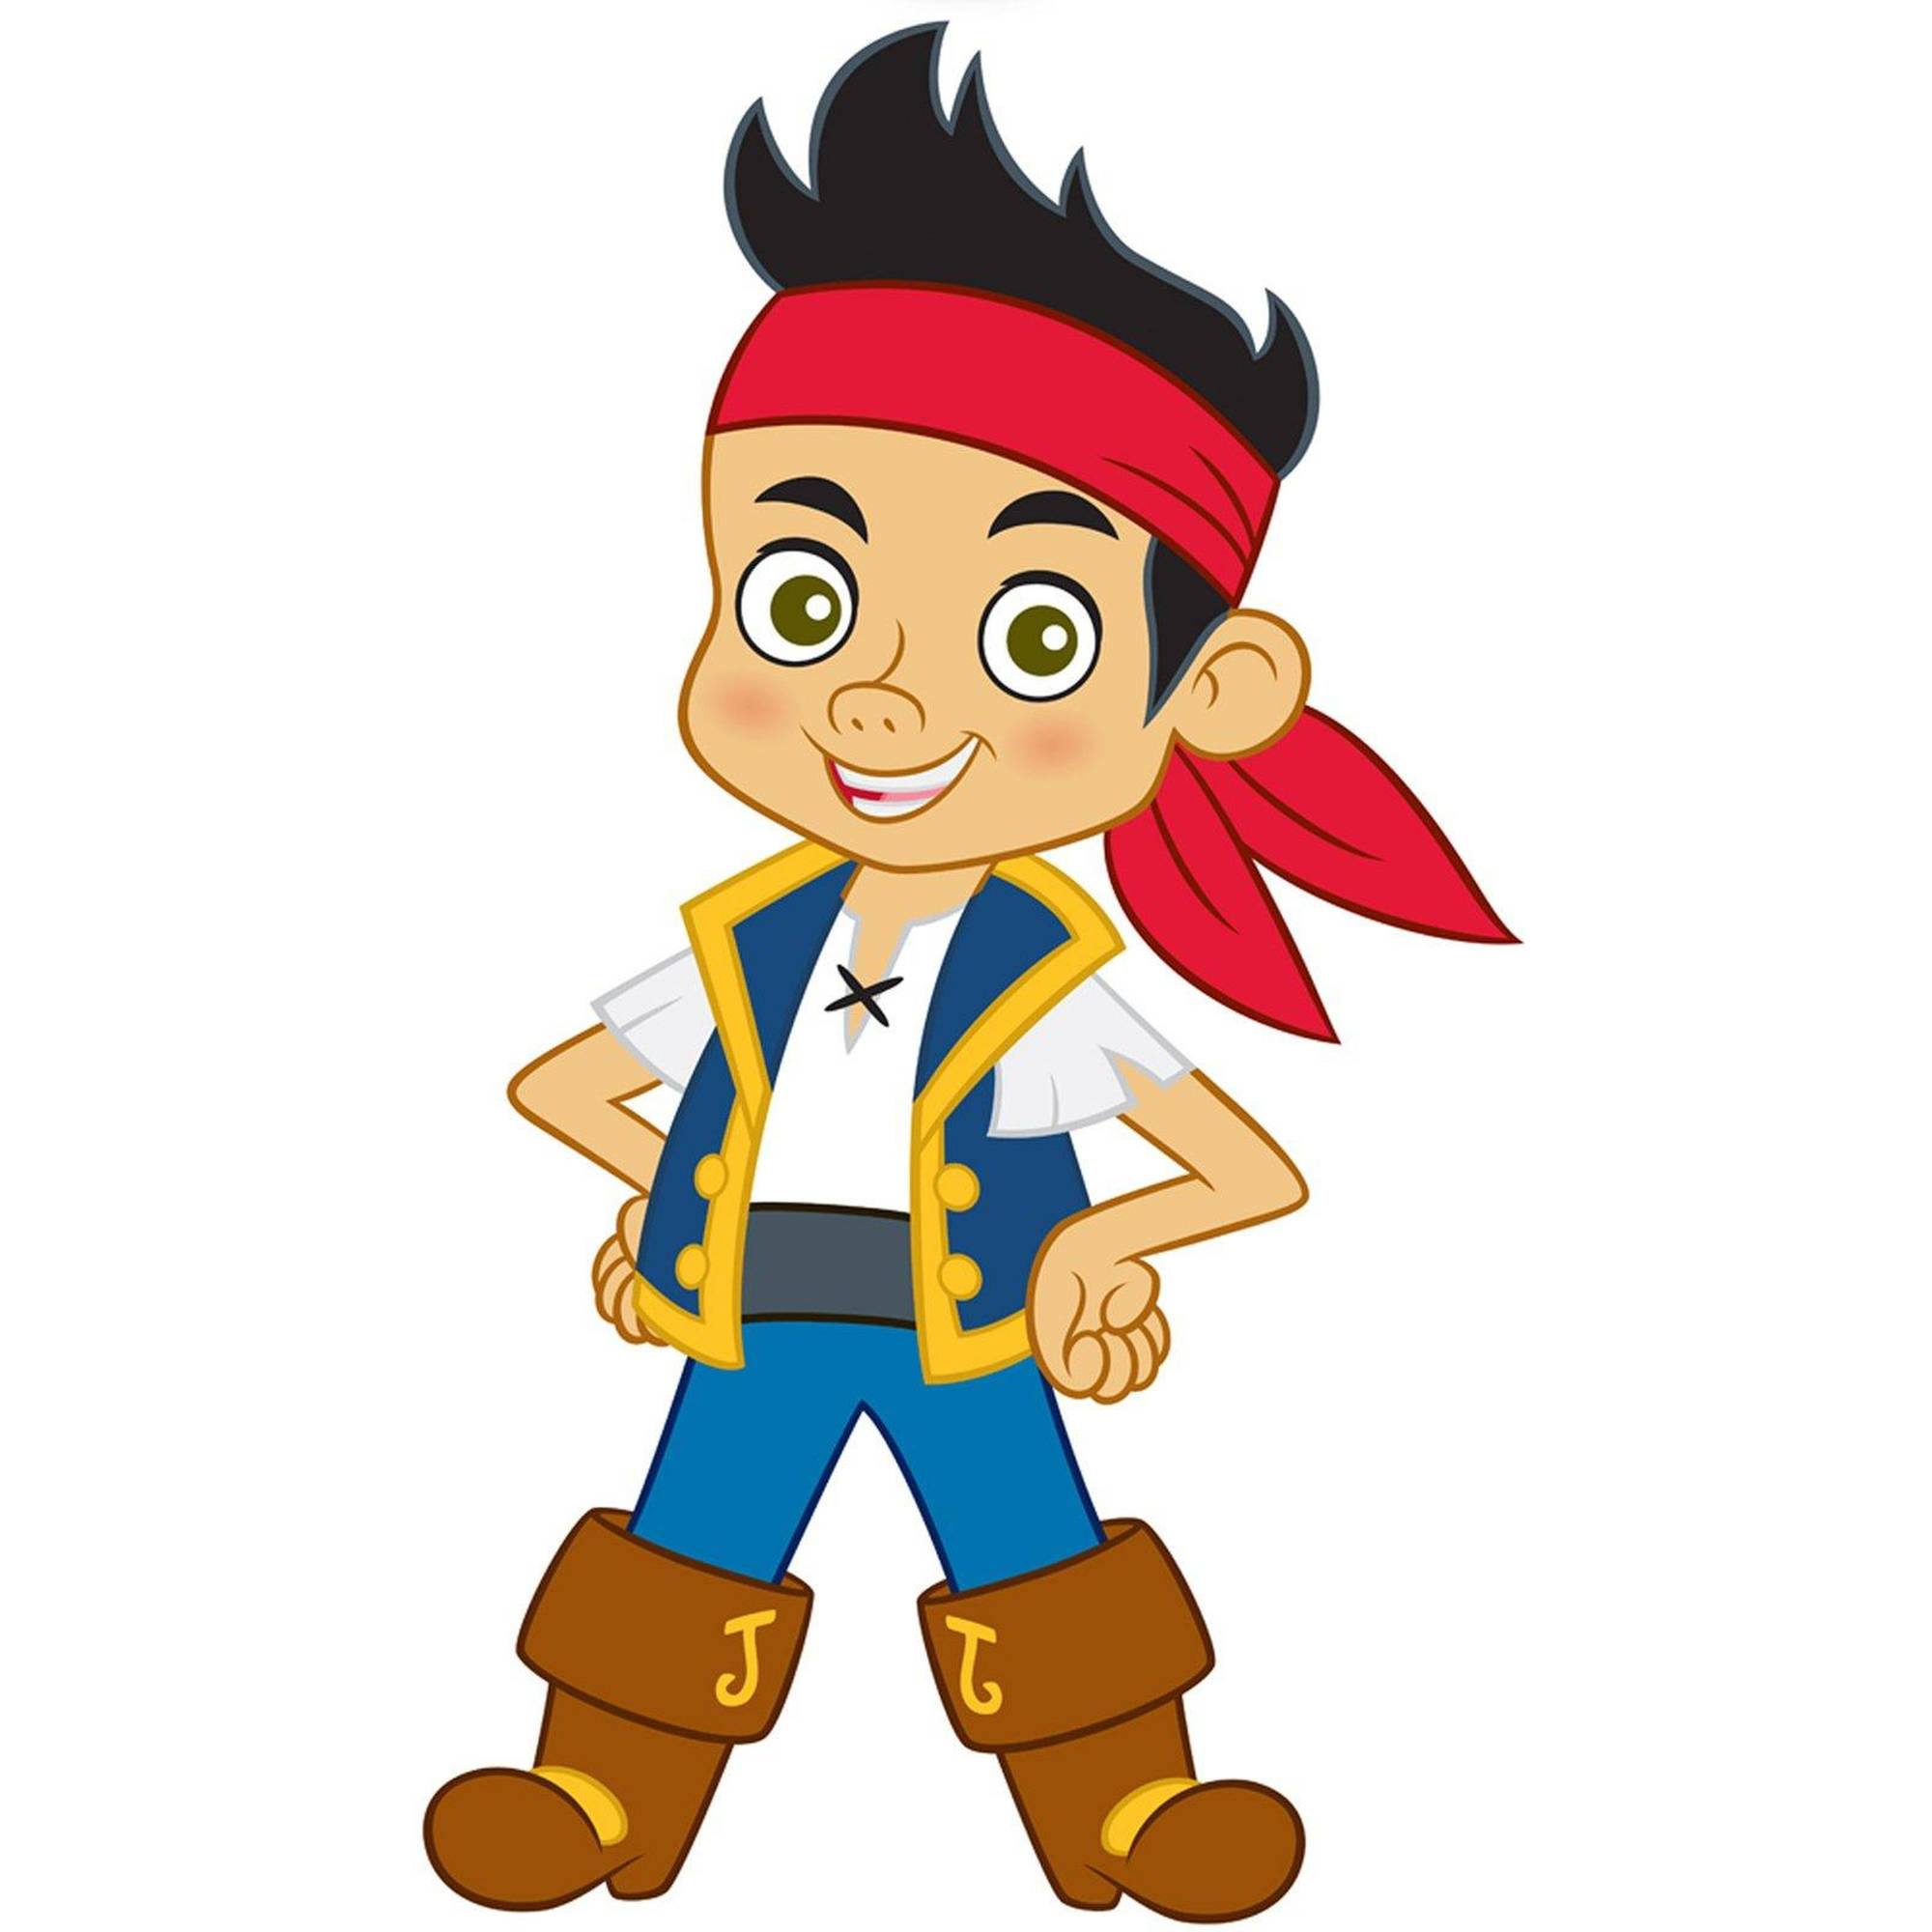 Disney Jake and the Never Land Pirates Standup, 3' Tall